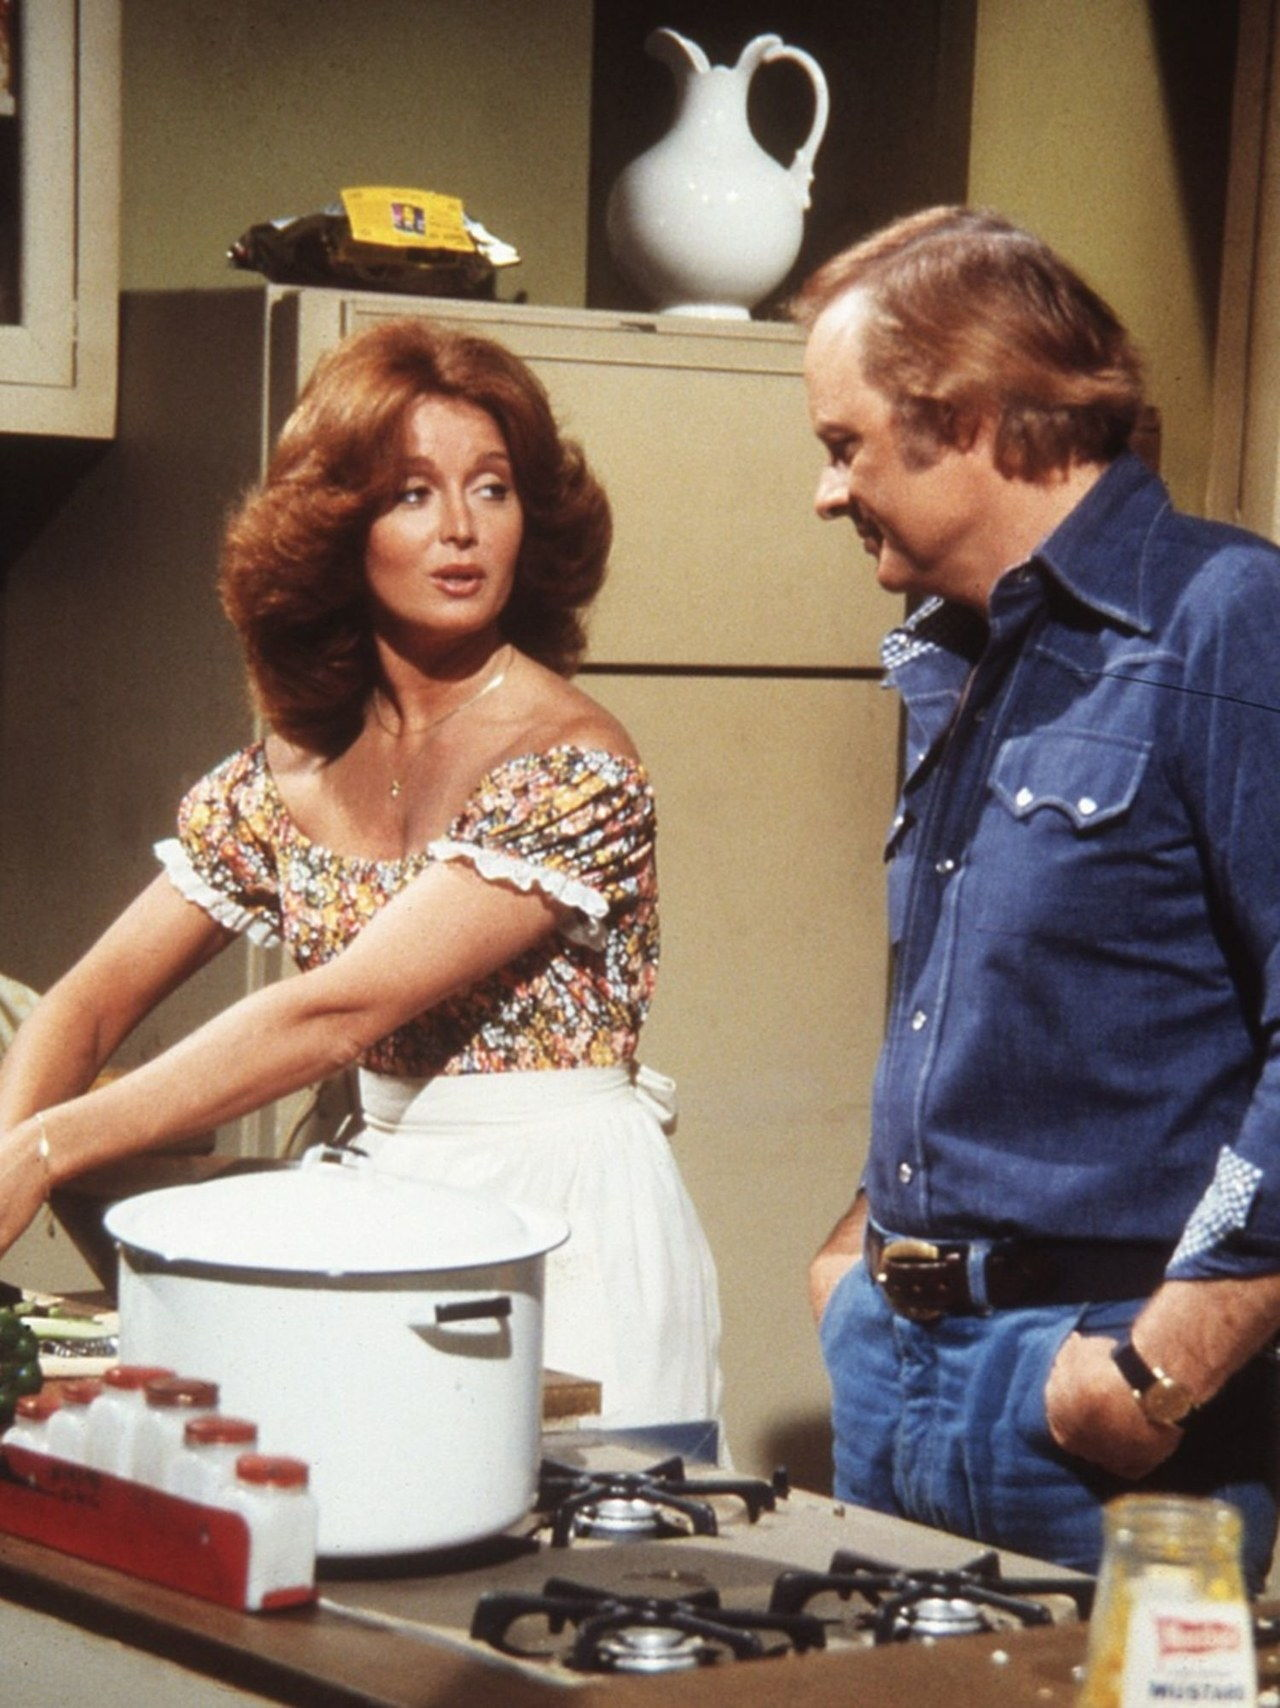 suzanne rogers john clarke days of our lives